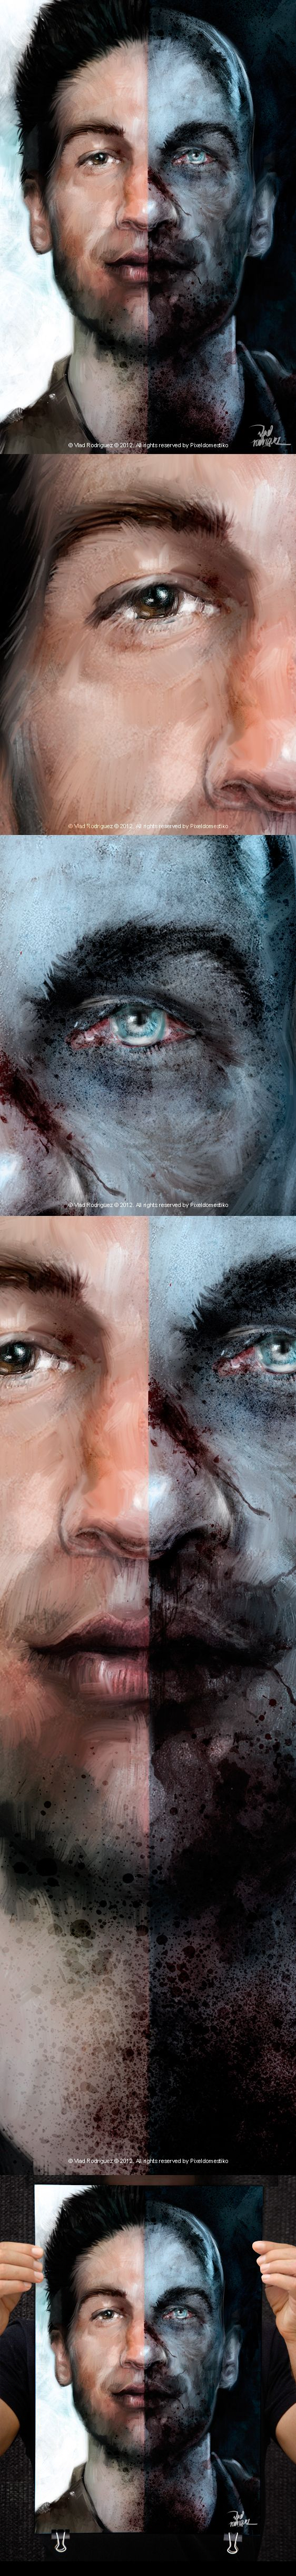 The Walking dead! with Shane Walsh by Vlad Rodriguez, via Behance